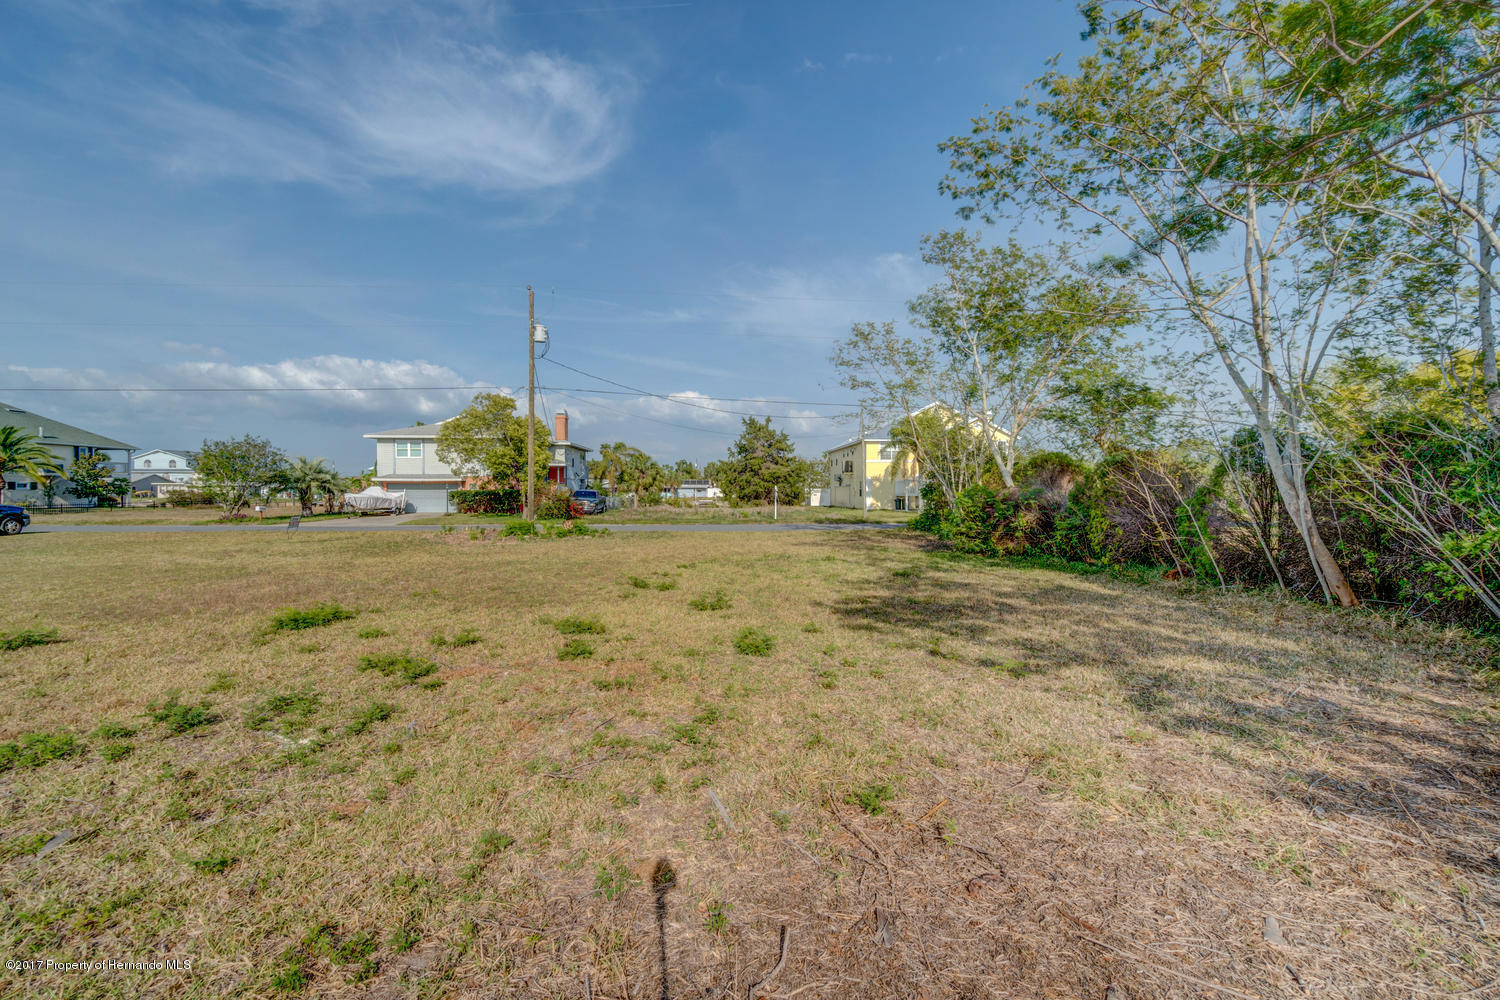 Lot 6 Diaz Ct (33)